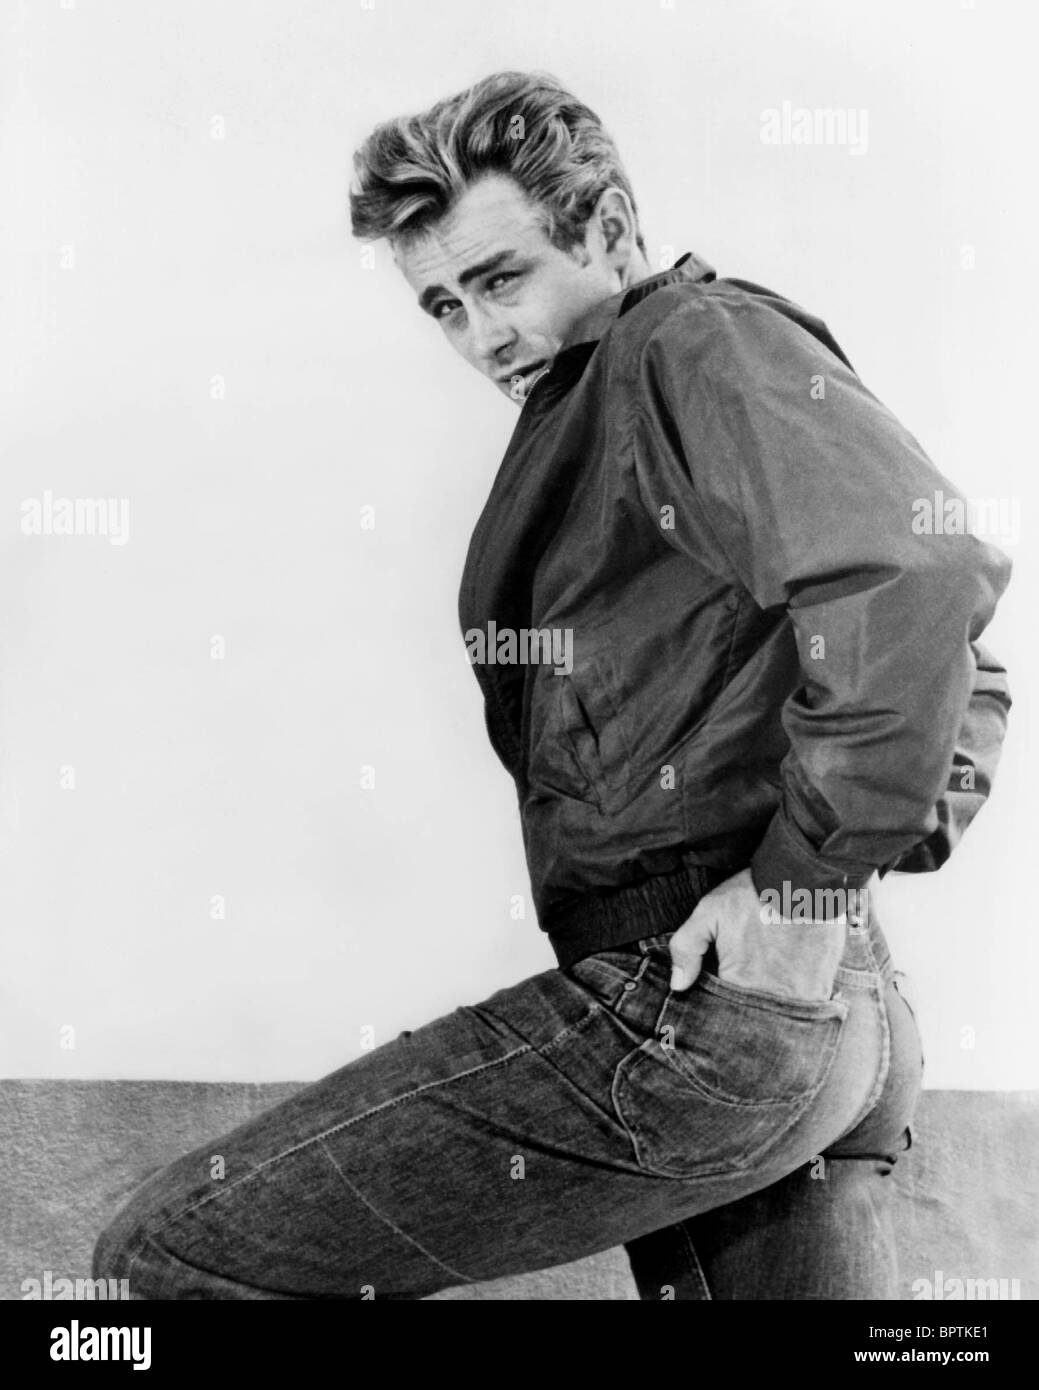 james dean actor 1955 stock photo royalty free image